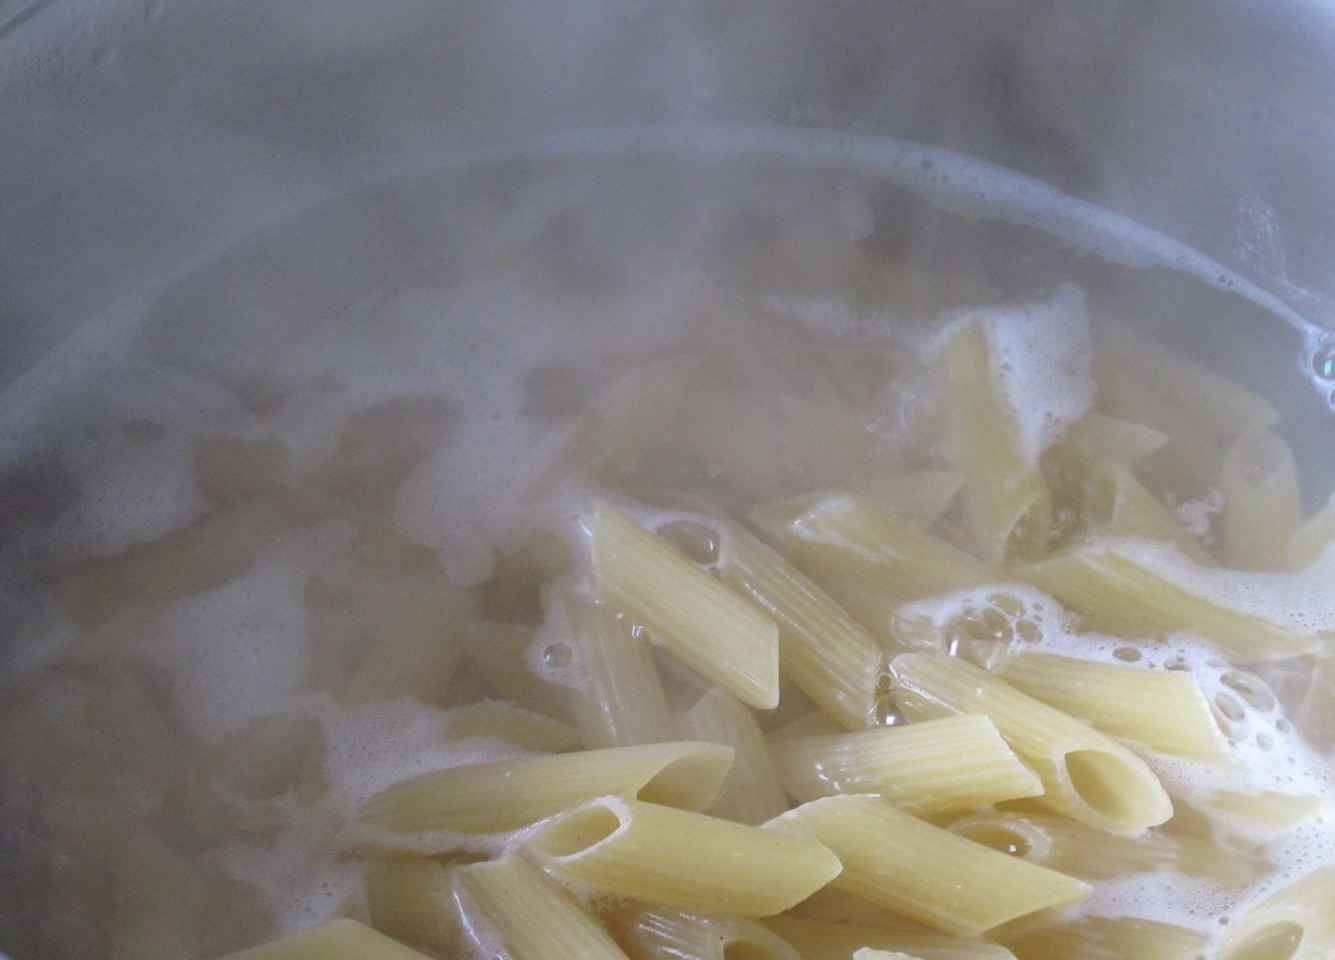 Once the pasta is ready drain the water n place pasta in a bowl